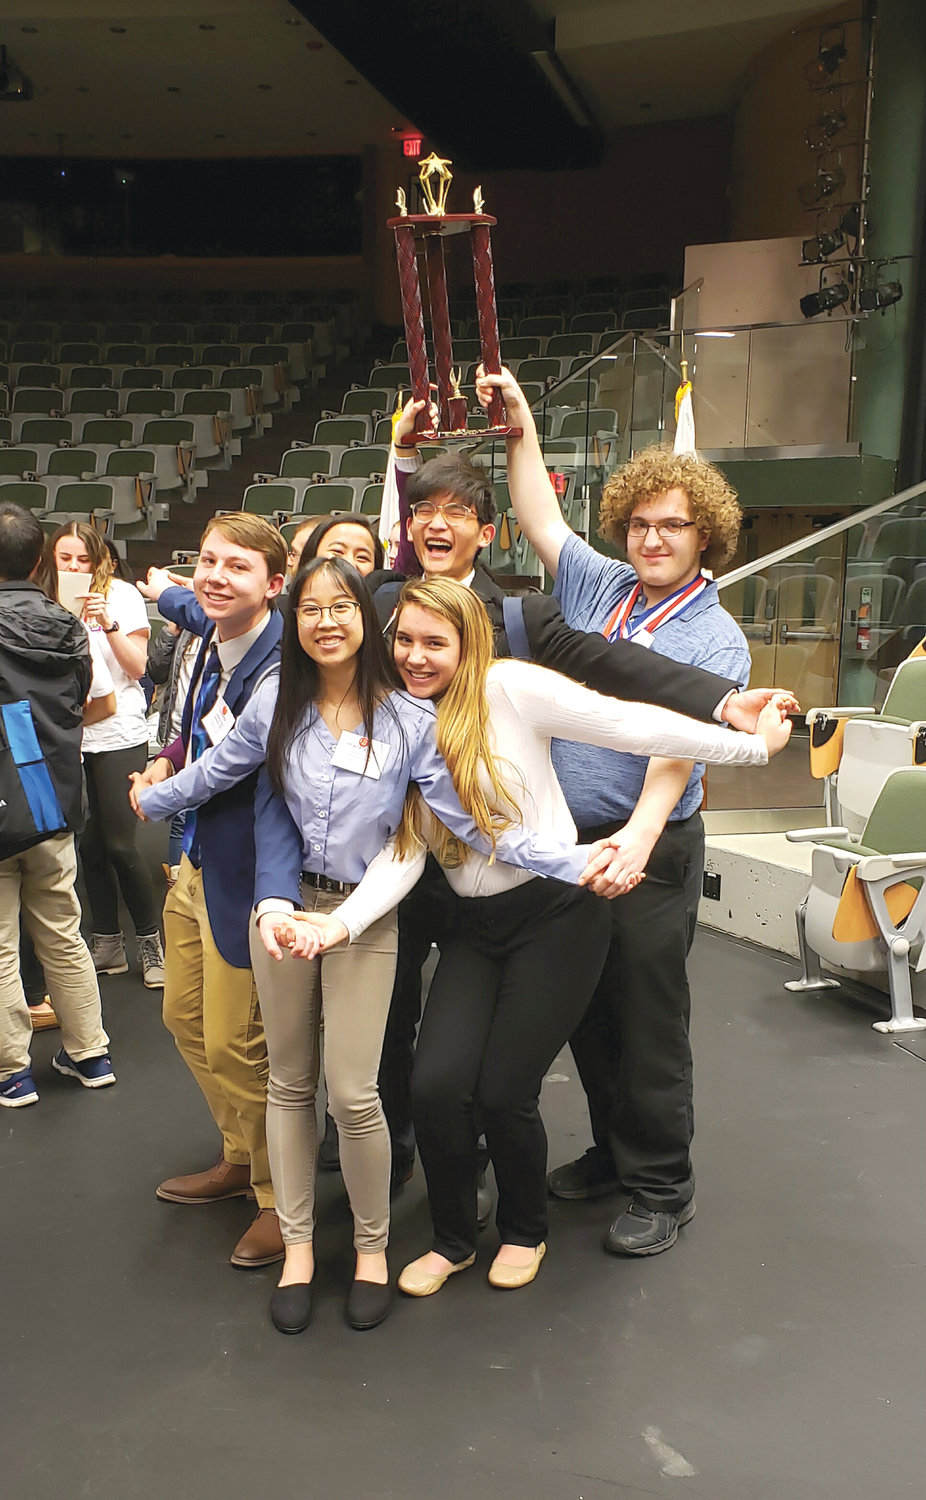 STARRING SENIORS: The senior members of Cranston West's team – Cory Dottor, Allison Vang Inthavha Singharaja, Logan Chin, Hayley McCrystal and Stephen Lemme – celebrate after Sunday's Academic Decathlon.